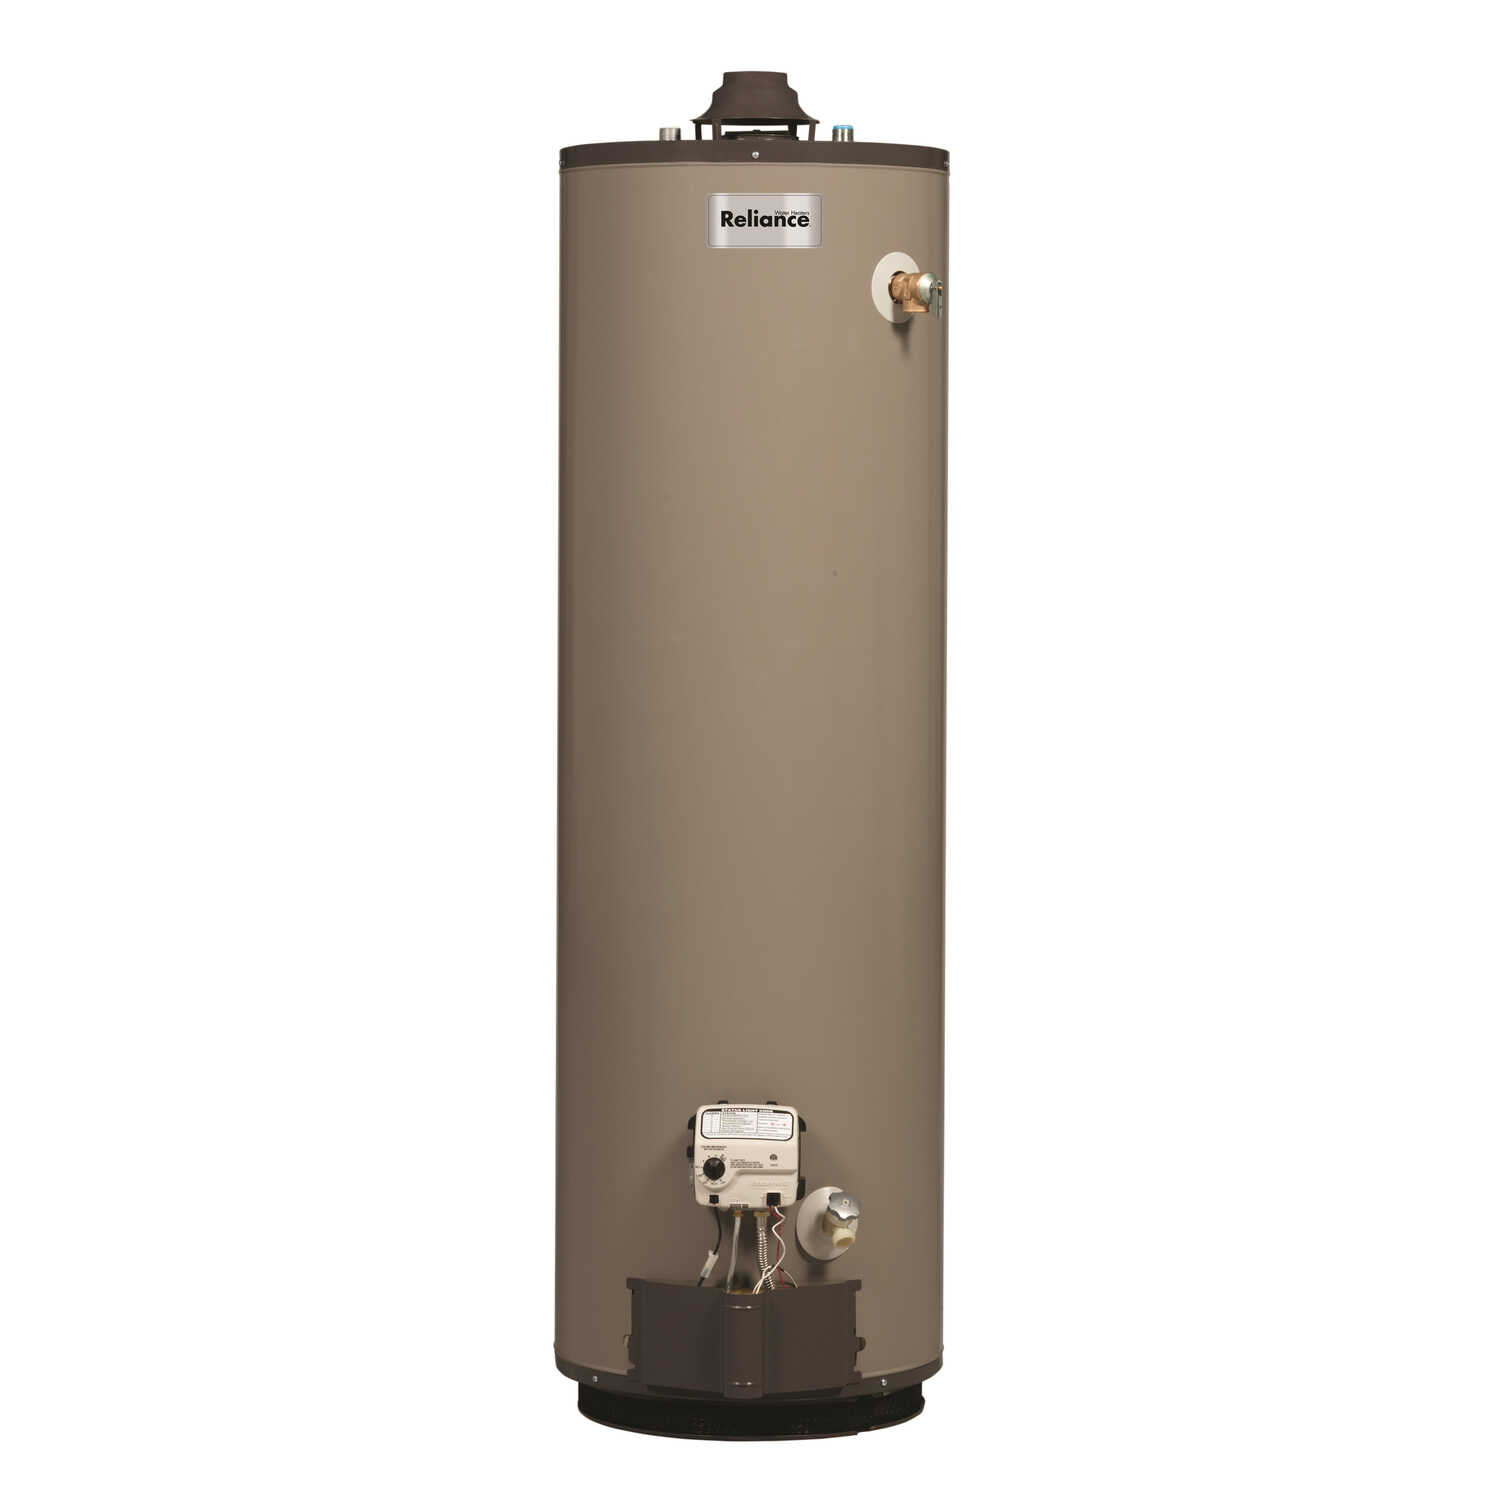 Reliance  Propane  Water Heater  62 in. H x 20 in. L x 20 in. W 40 gal.